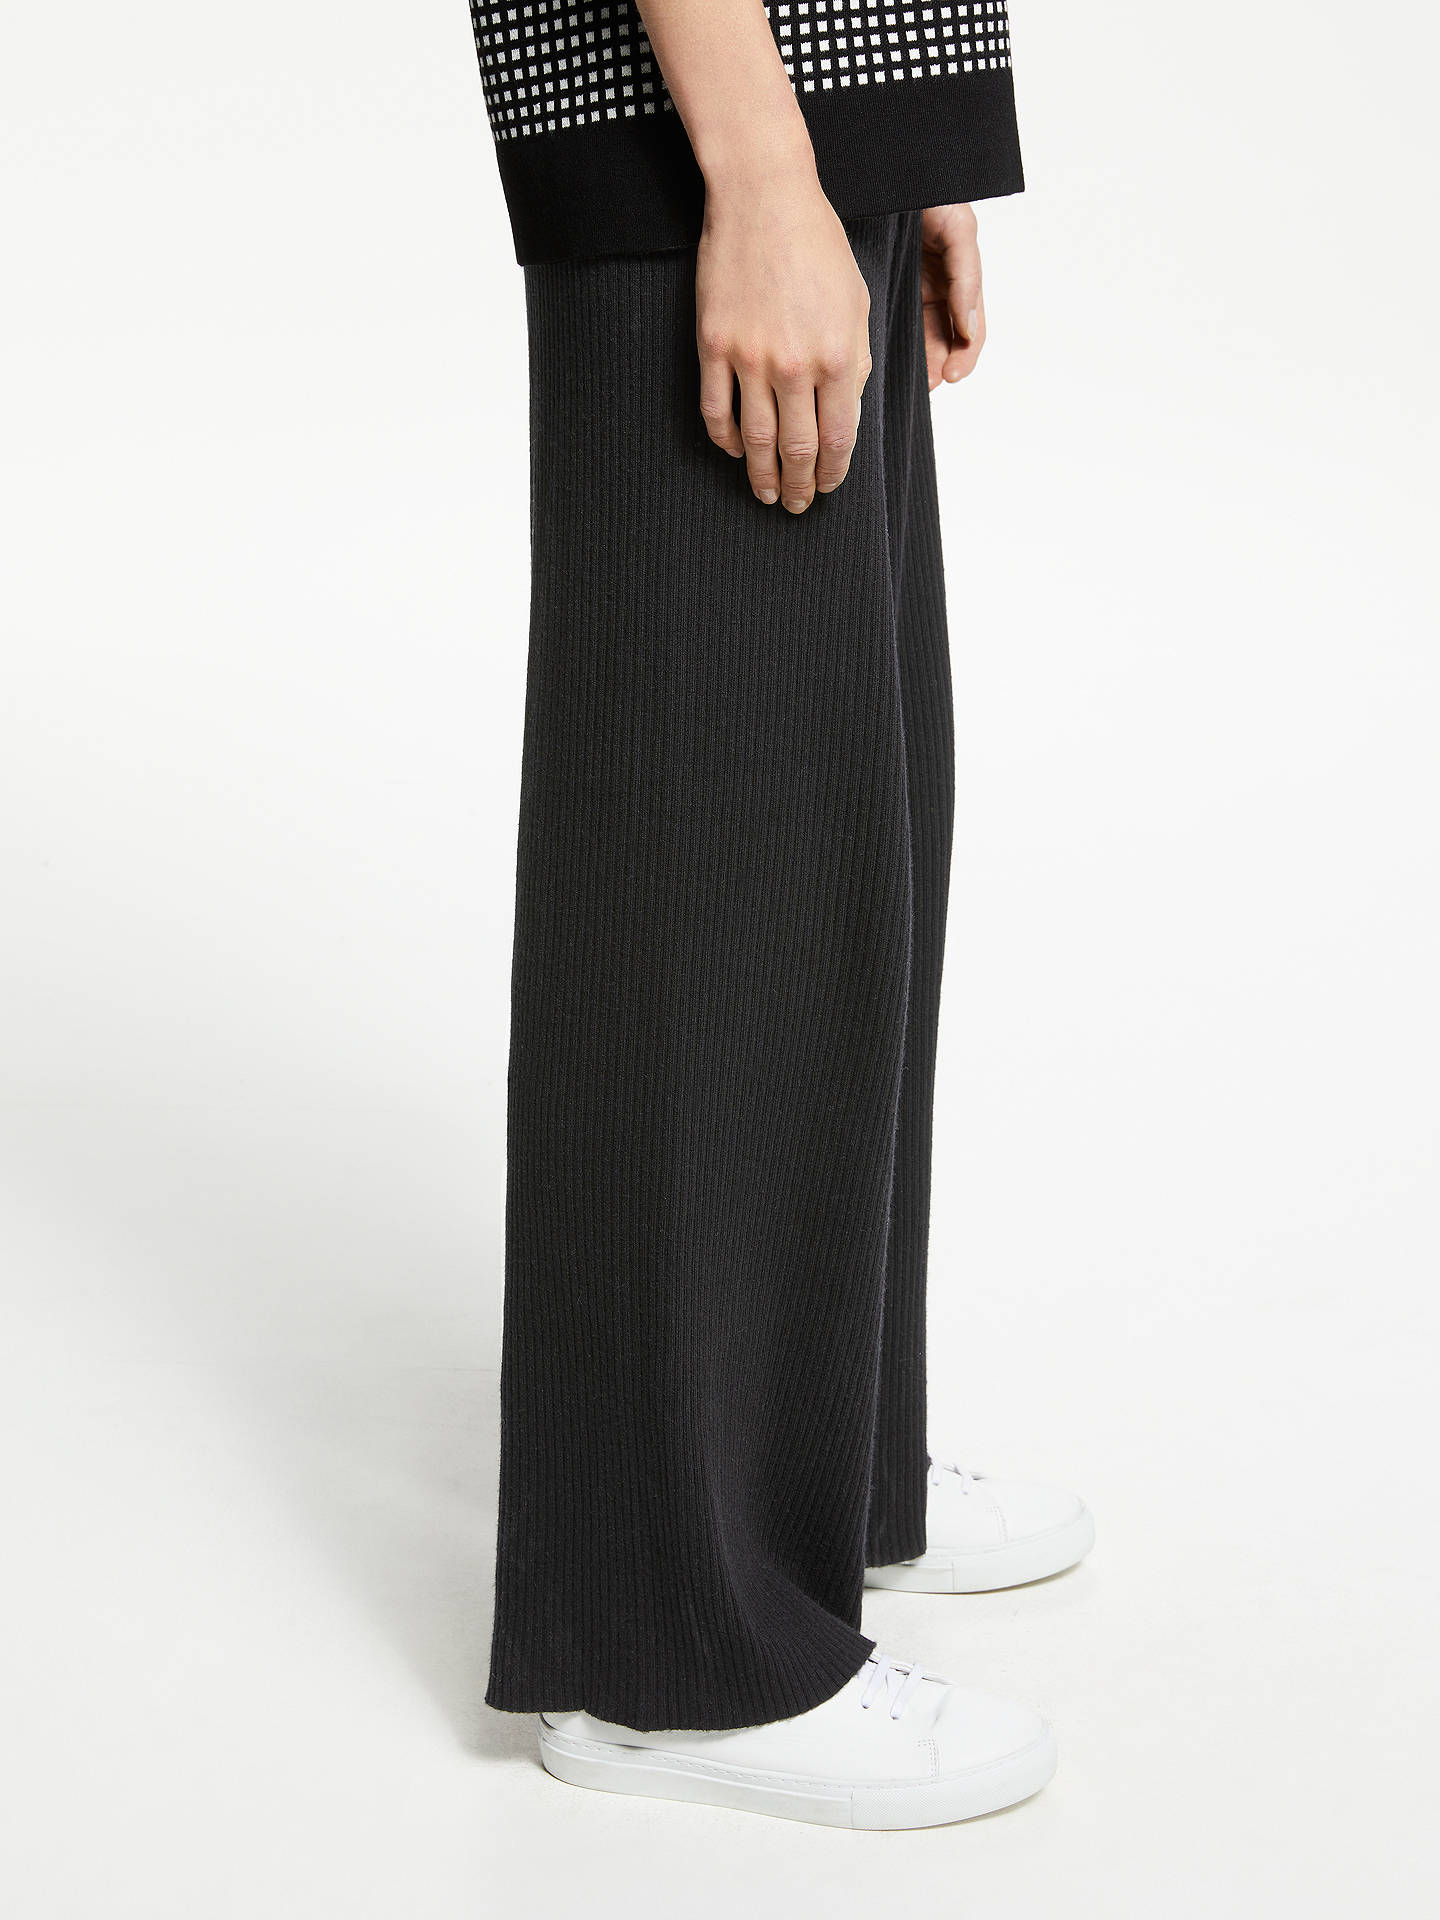 Buy PATTERNITY + John Lewis Rib Knit Lounge Trousers, Black, M Online at johnlewis.com